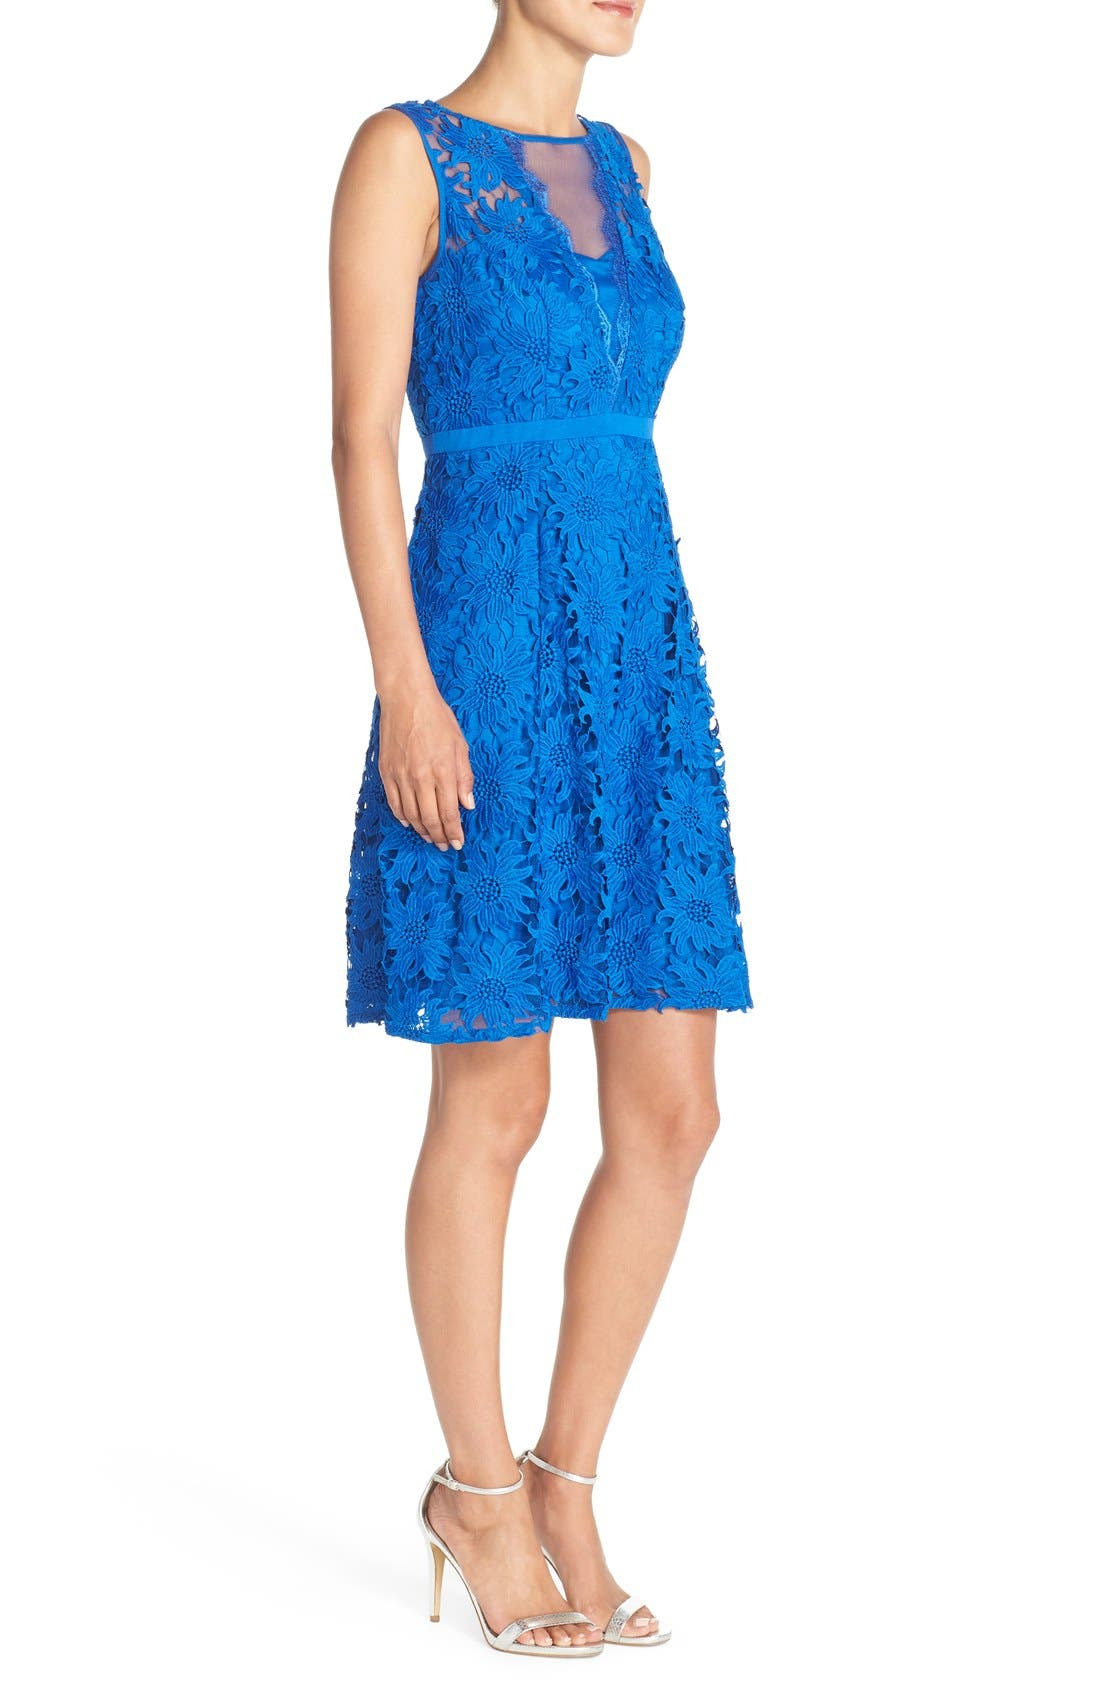 ADRIANNA PAPELL, Illusion Floral Lace Fit & Flare Dress, Alternate thumbnail 4, color, 433